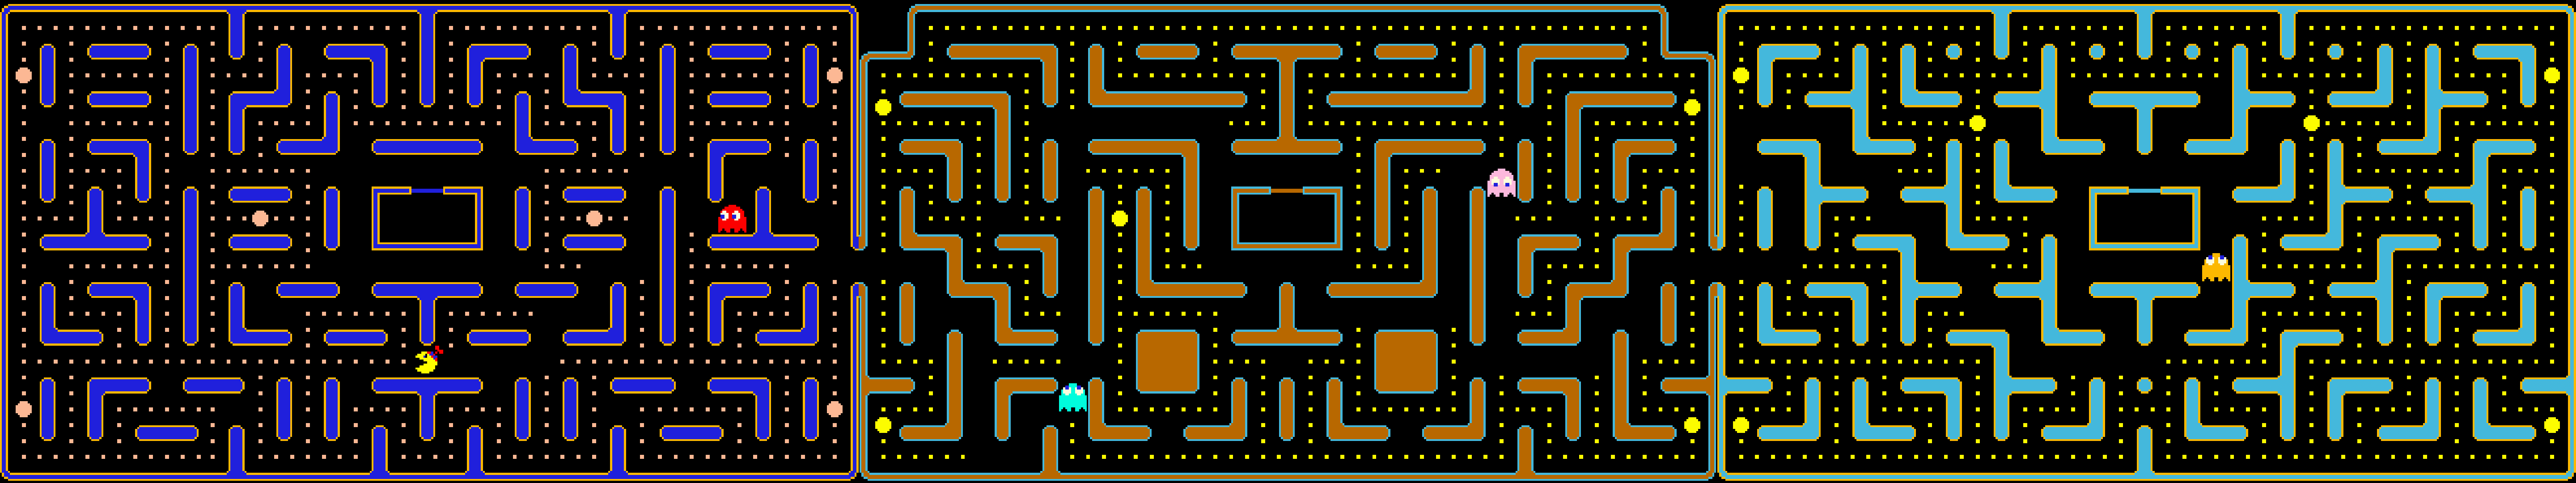 Jr-Pac-Man-triple-monitor-desktop-background-x1080-wallpaper-wp3407647